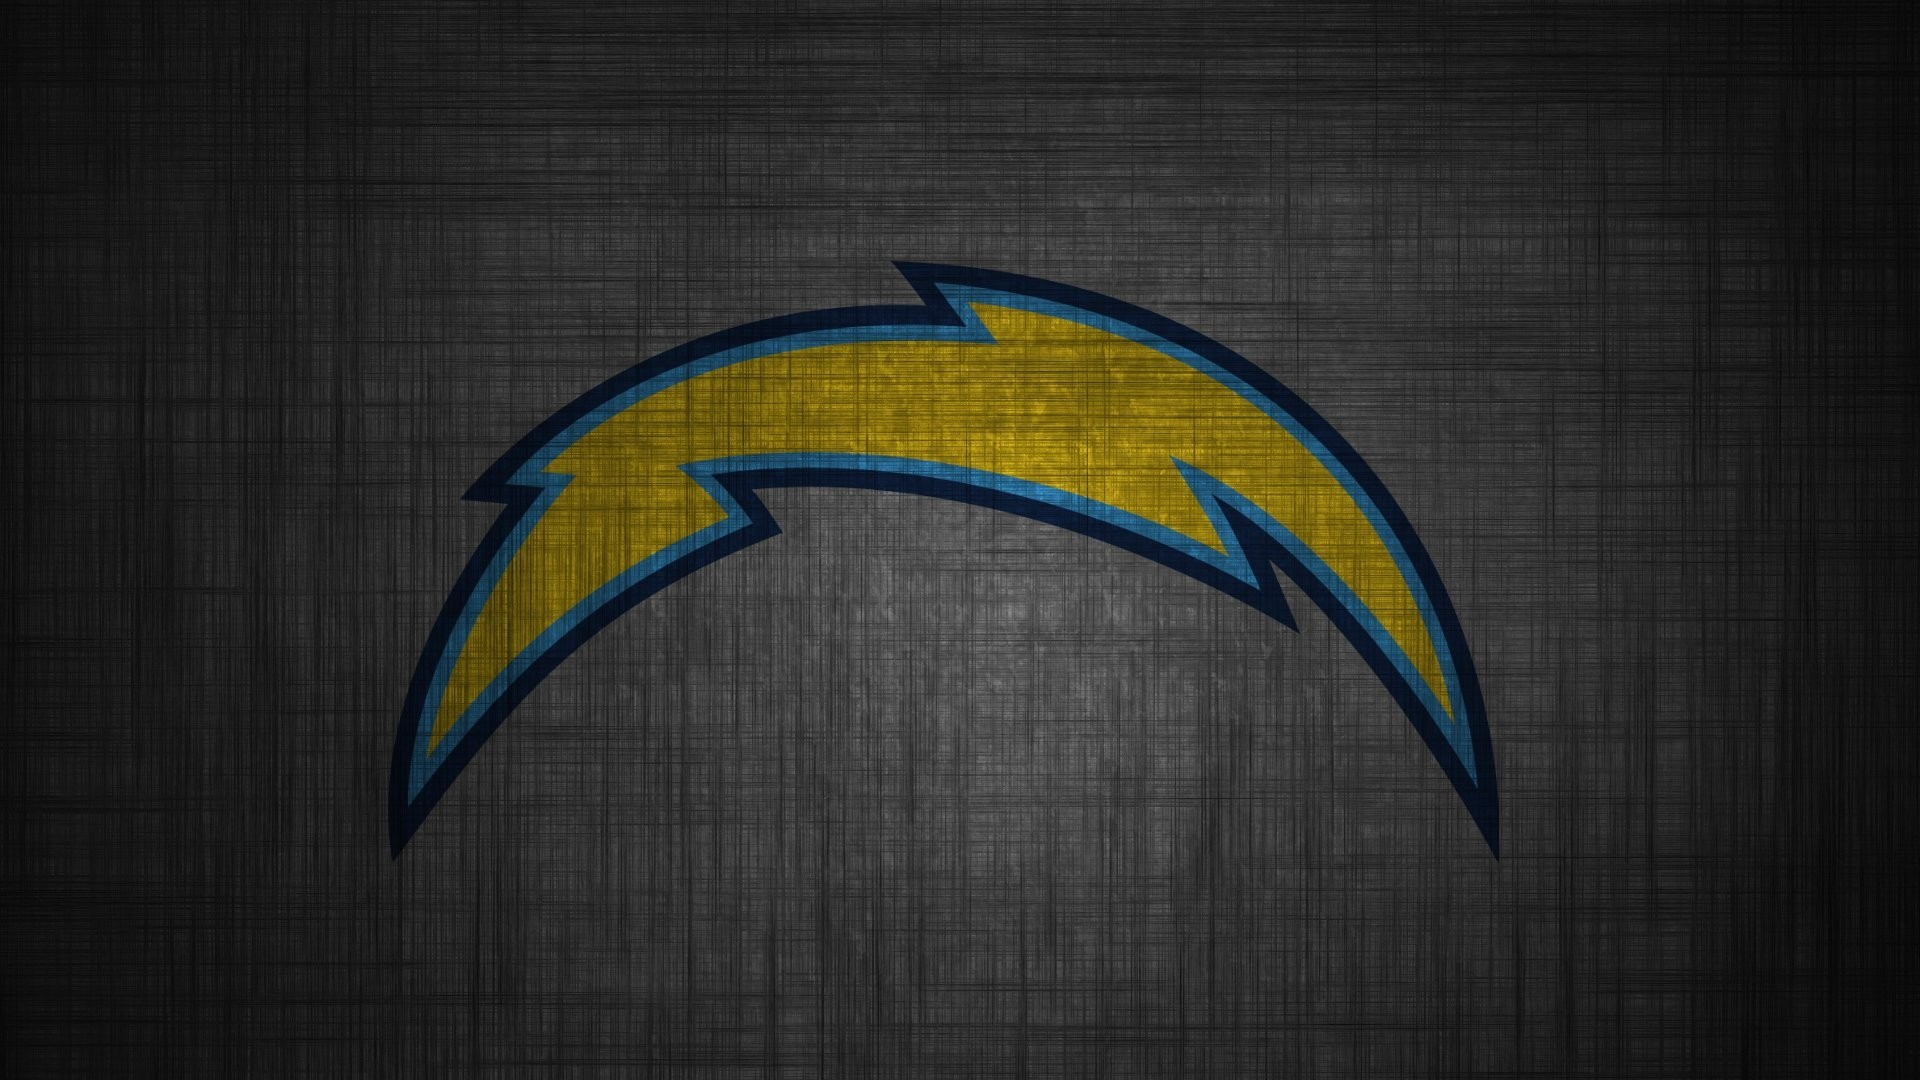 Chargers hd wallpaper download